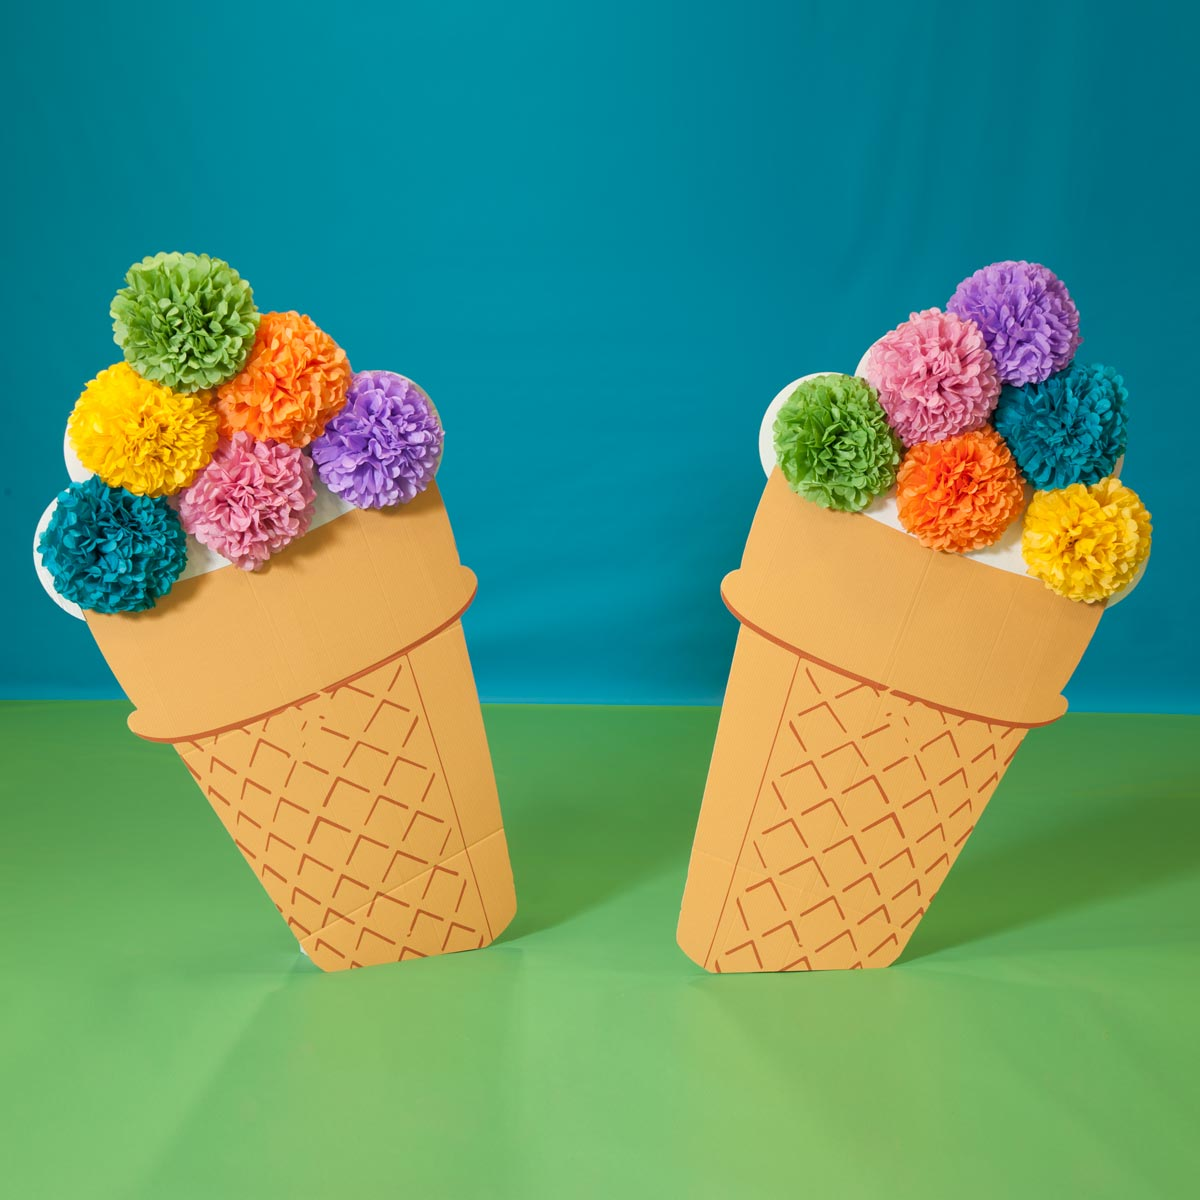 Six Scoops Ice Cream Cones Kit (set of 2)